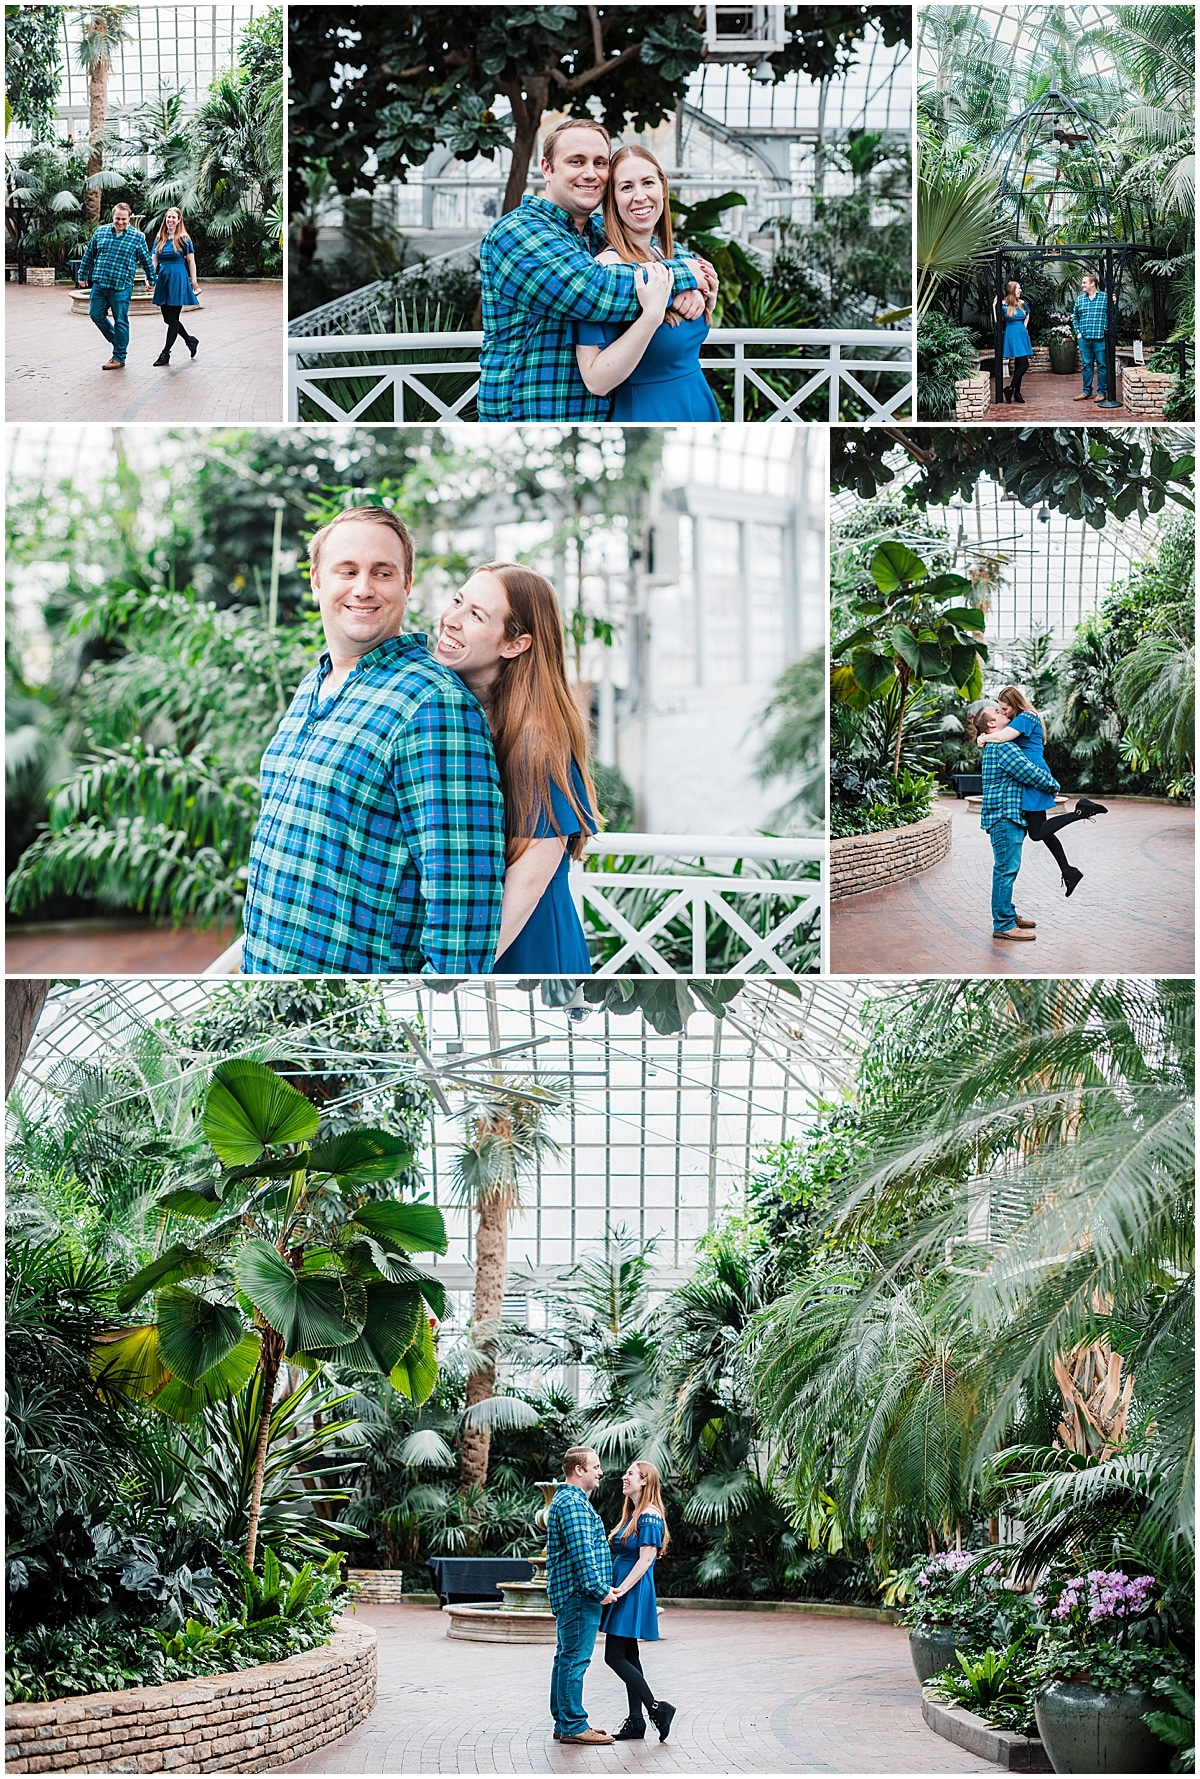 Franklin park conservatory wedding Columbus